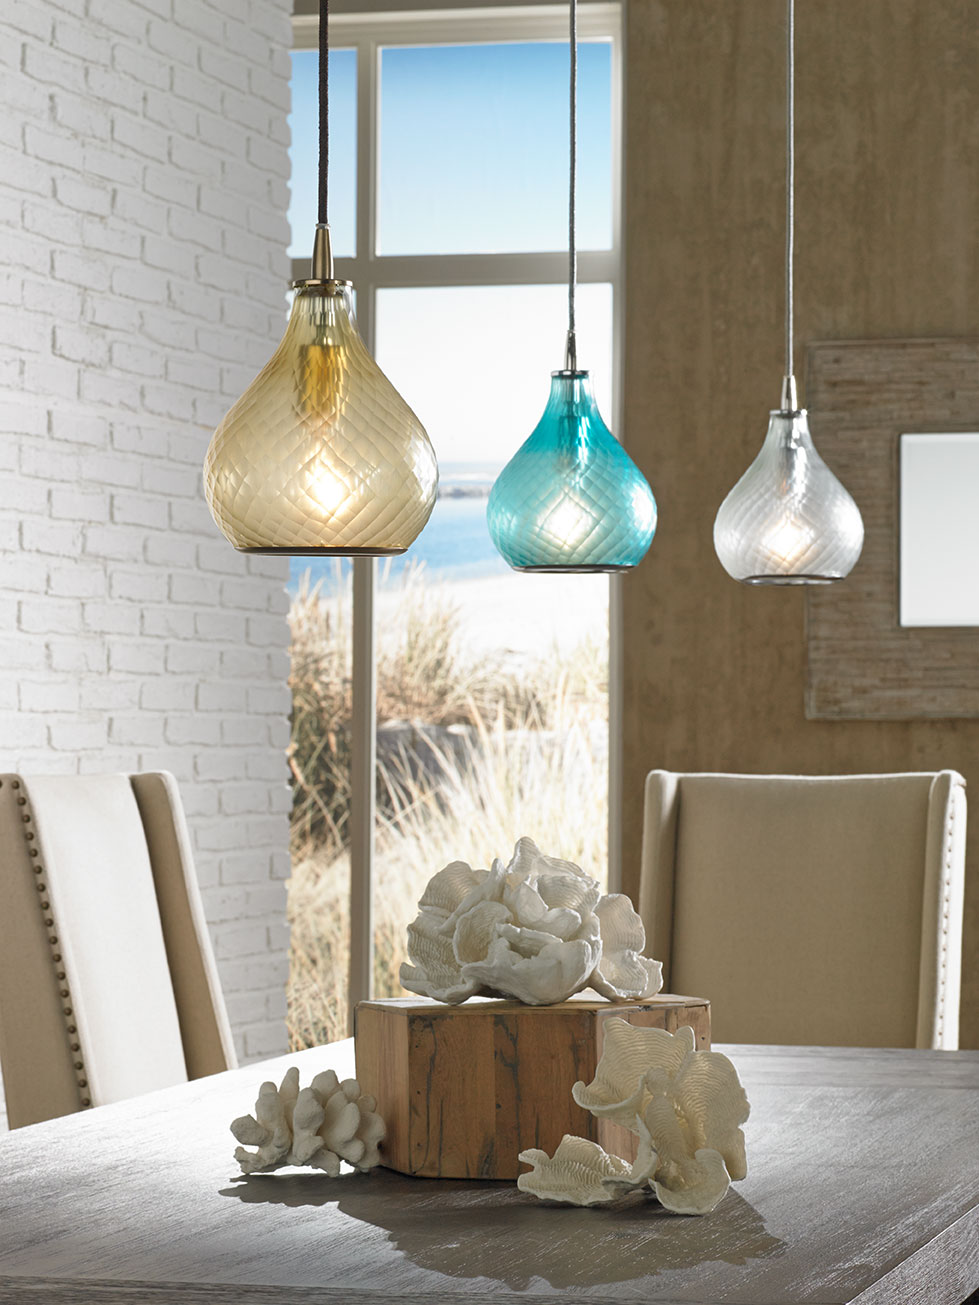 Lamps Plus Previews Exclusive Mini Pendant Light Fixtures From The Jamie Young Company At The